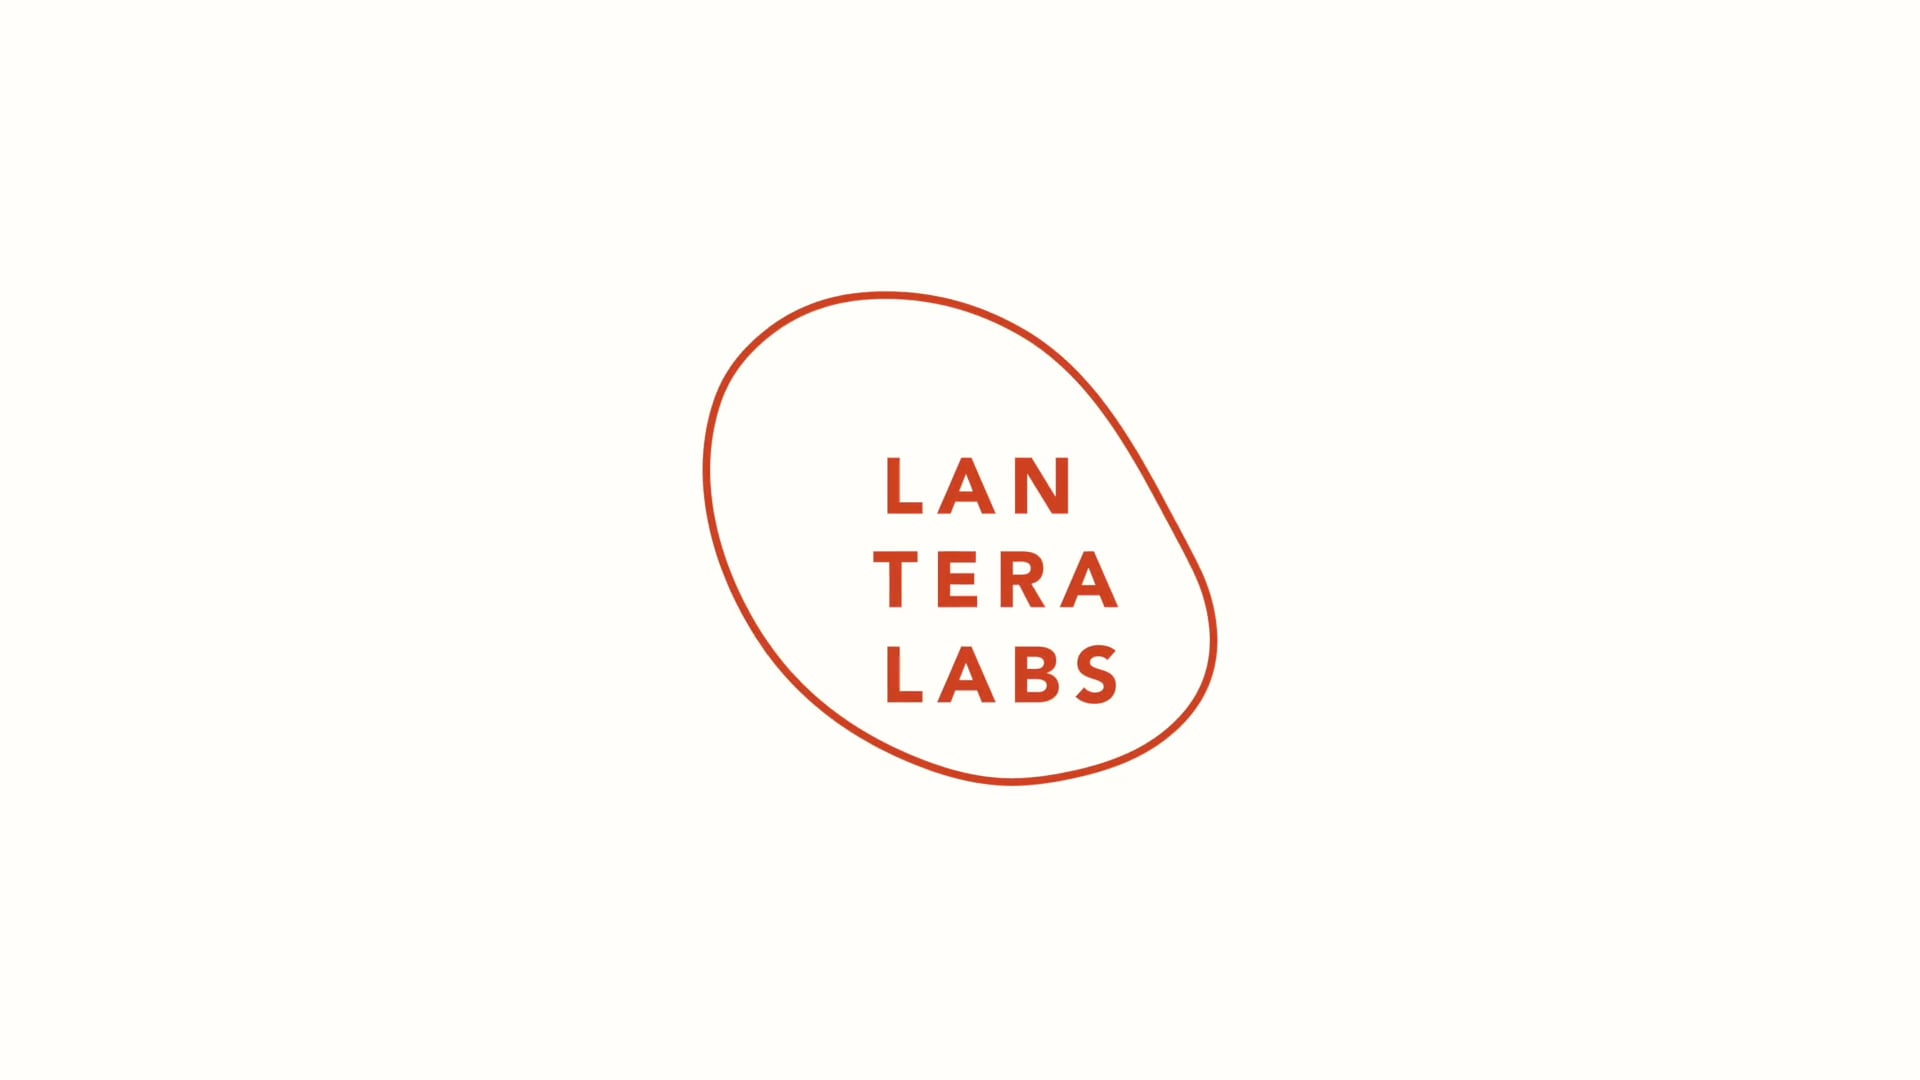 LANTERA LABS- what we are?